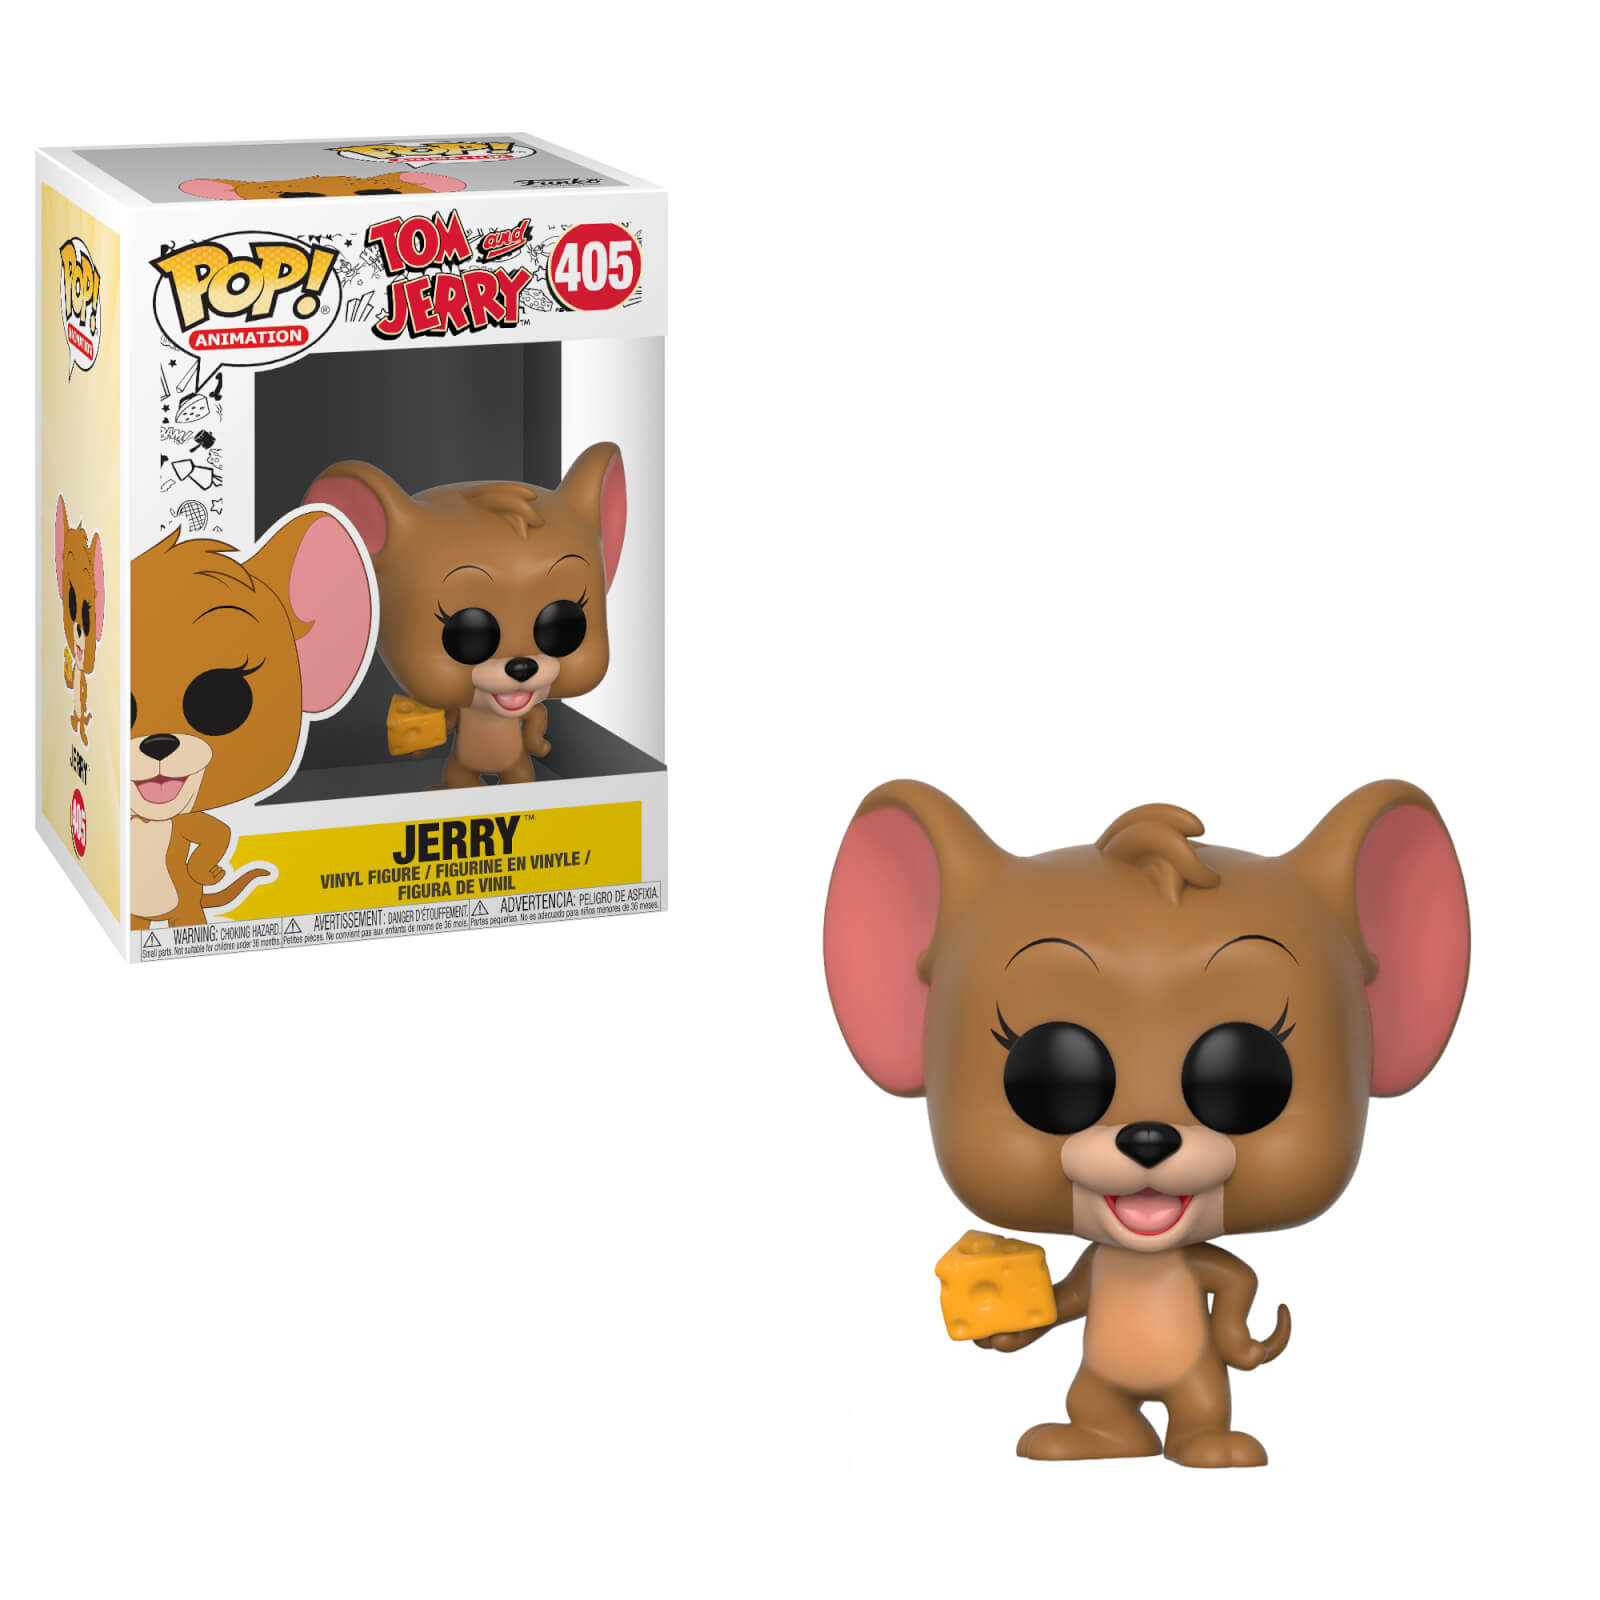 Hanna Barbera Tom & Jerry Jerry Pop! Vinyl Figure